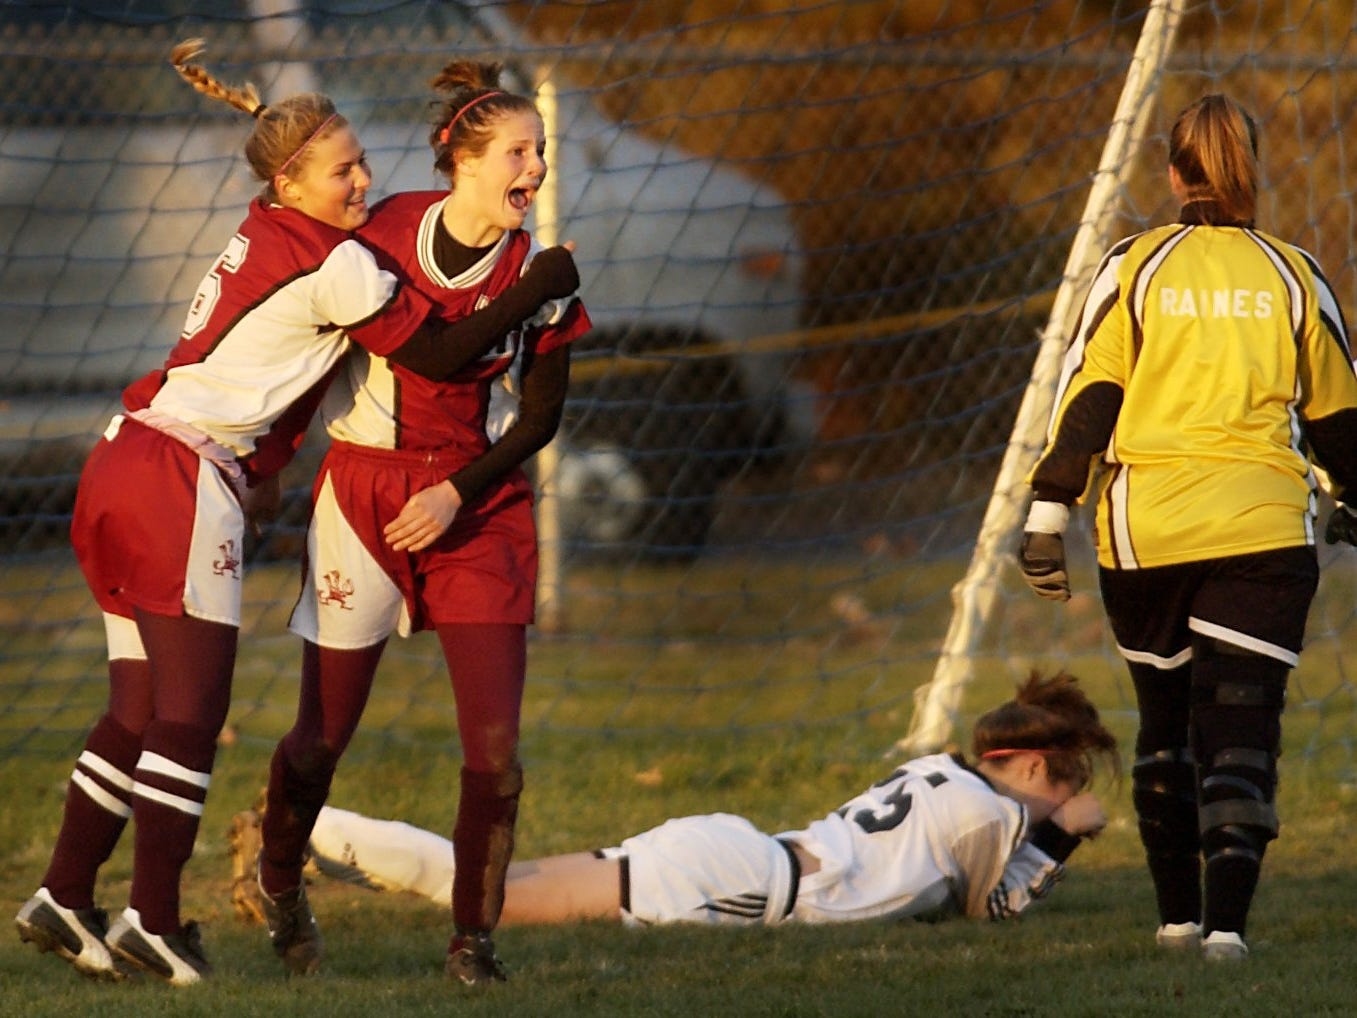 Kaelyn Puidokas of Aquinas hugs Erica Henderson after Henderson's goal in the second half of  game on Nov. 6, 2004.